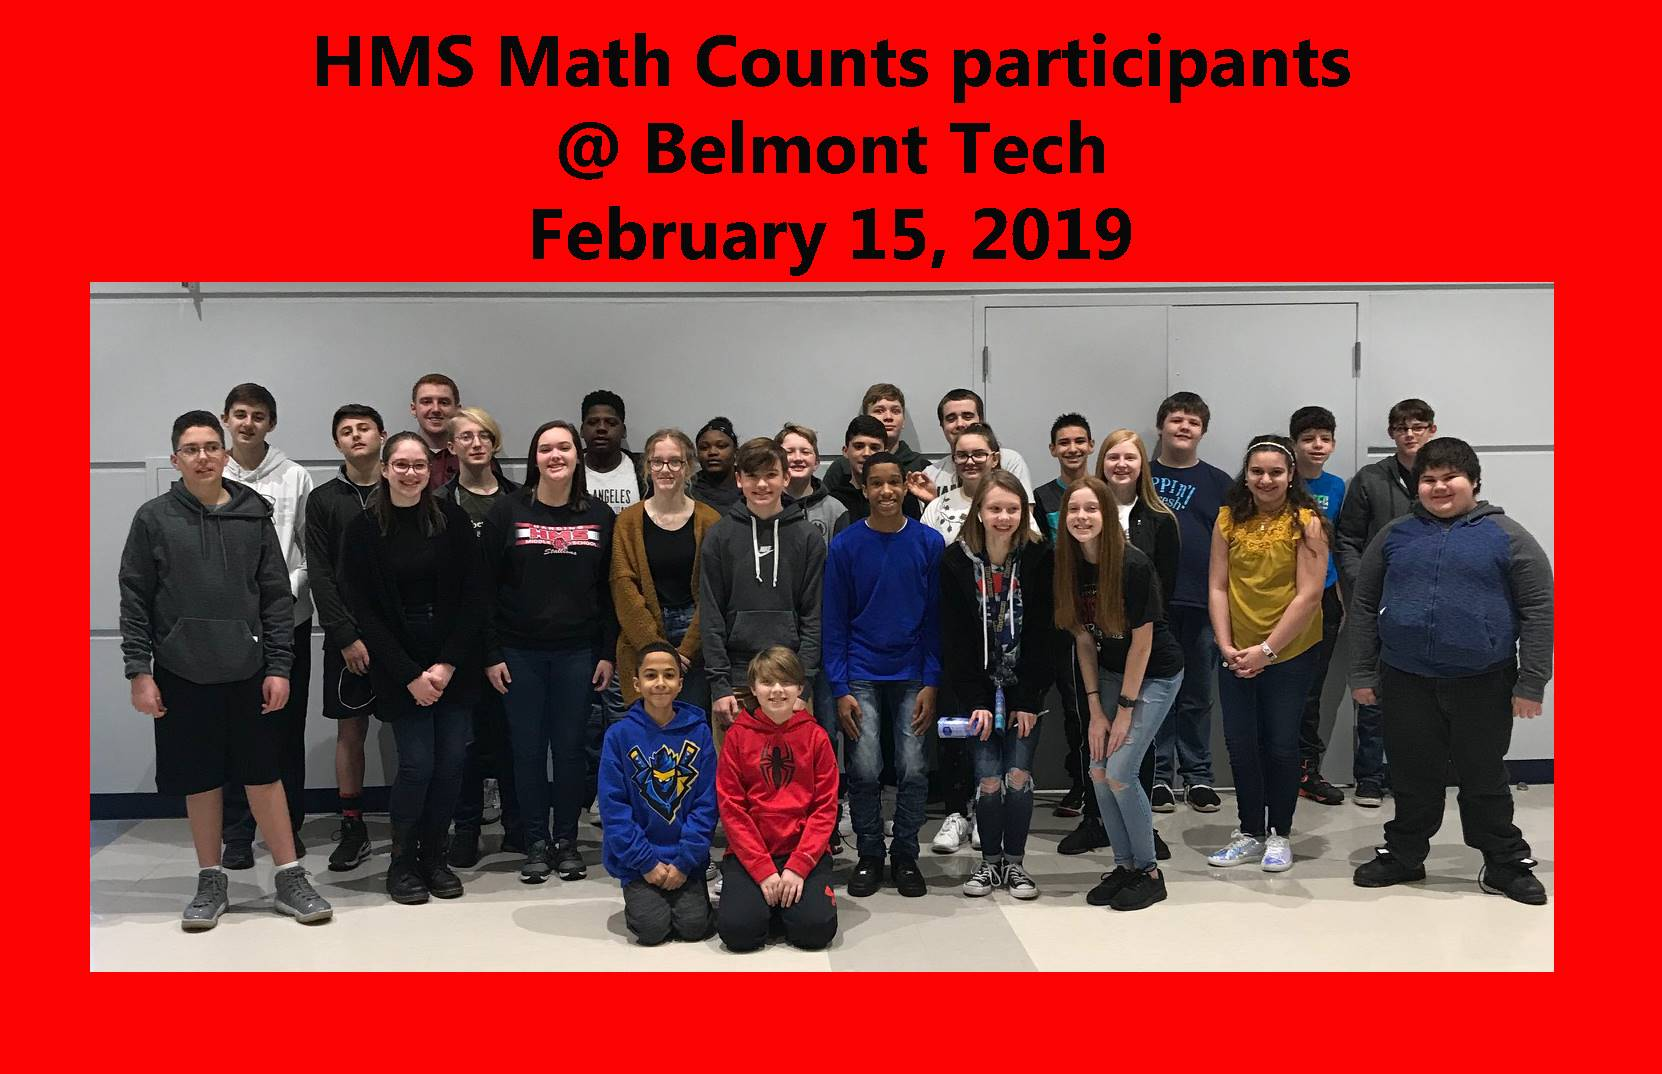 HMS Math Counts participants